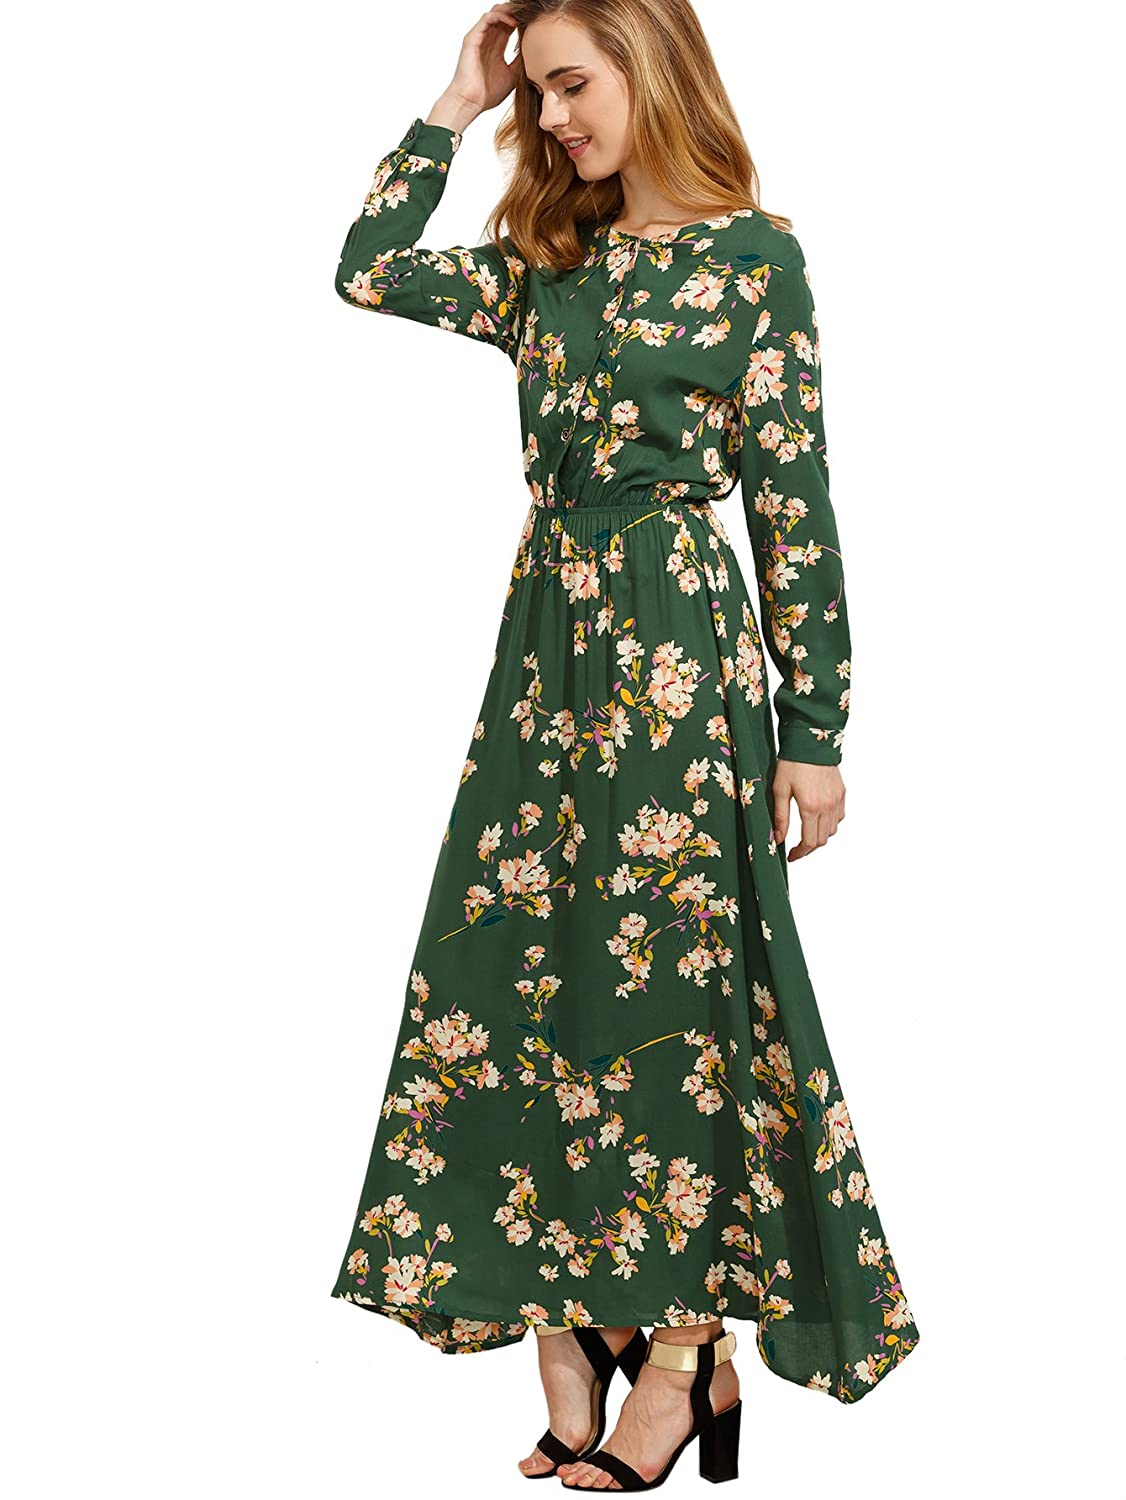 1900 Edwardian Dresses, Tea Party Dresses, White Lace Dresses Floerns Womens Long Sleeve Floral Print Button Casual Maxi Dress $39.99 AT vintagedancer.com